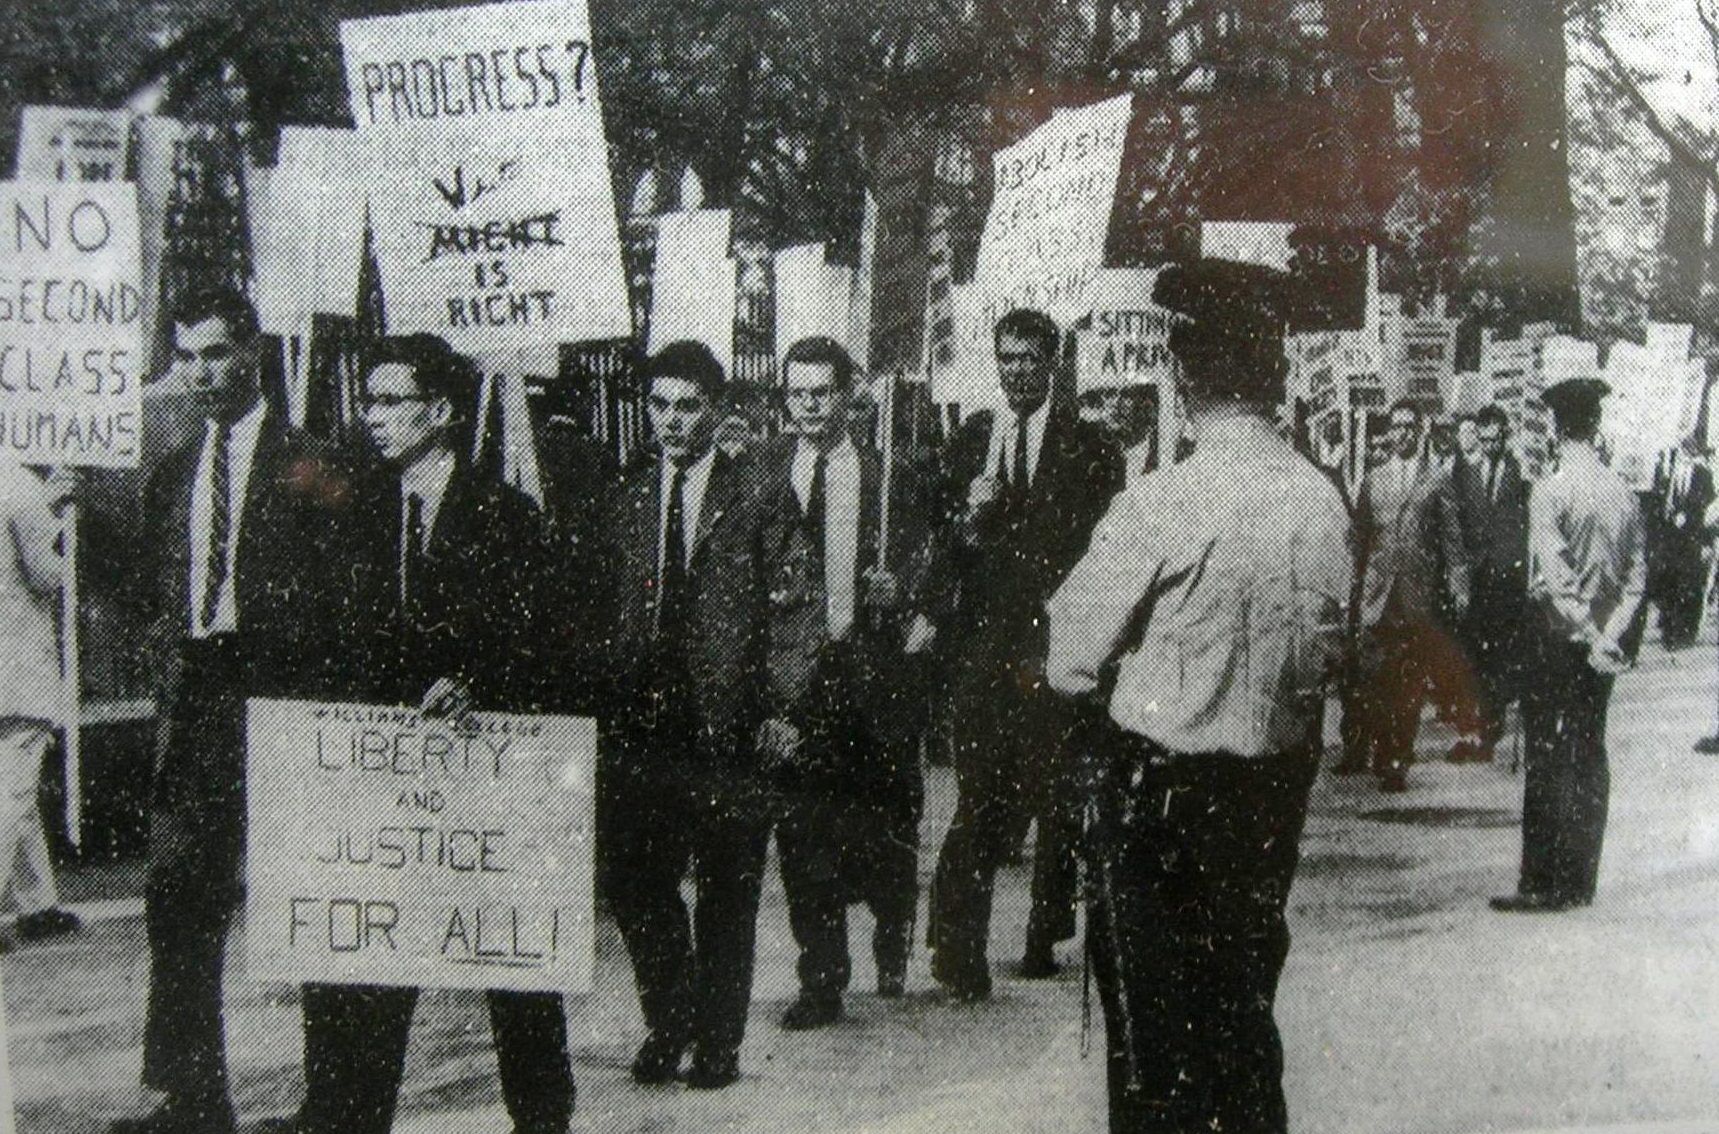 protesters at a civil rights march